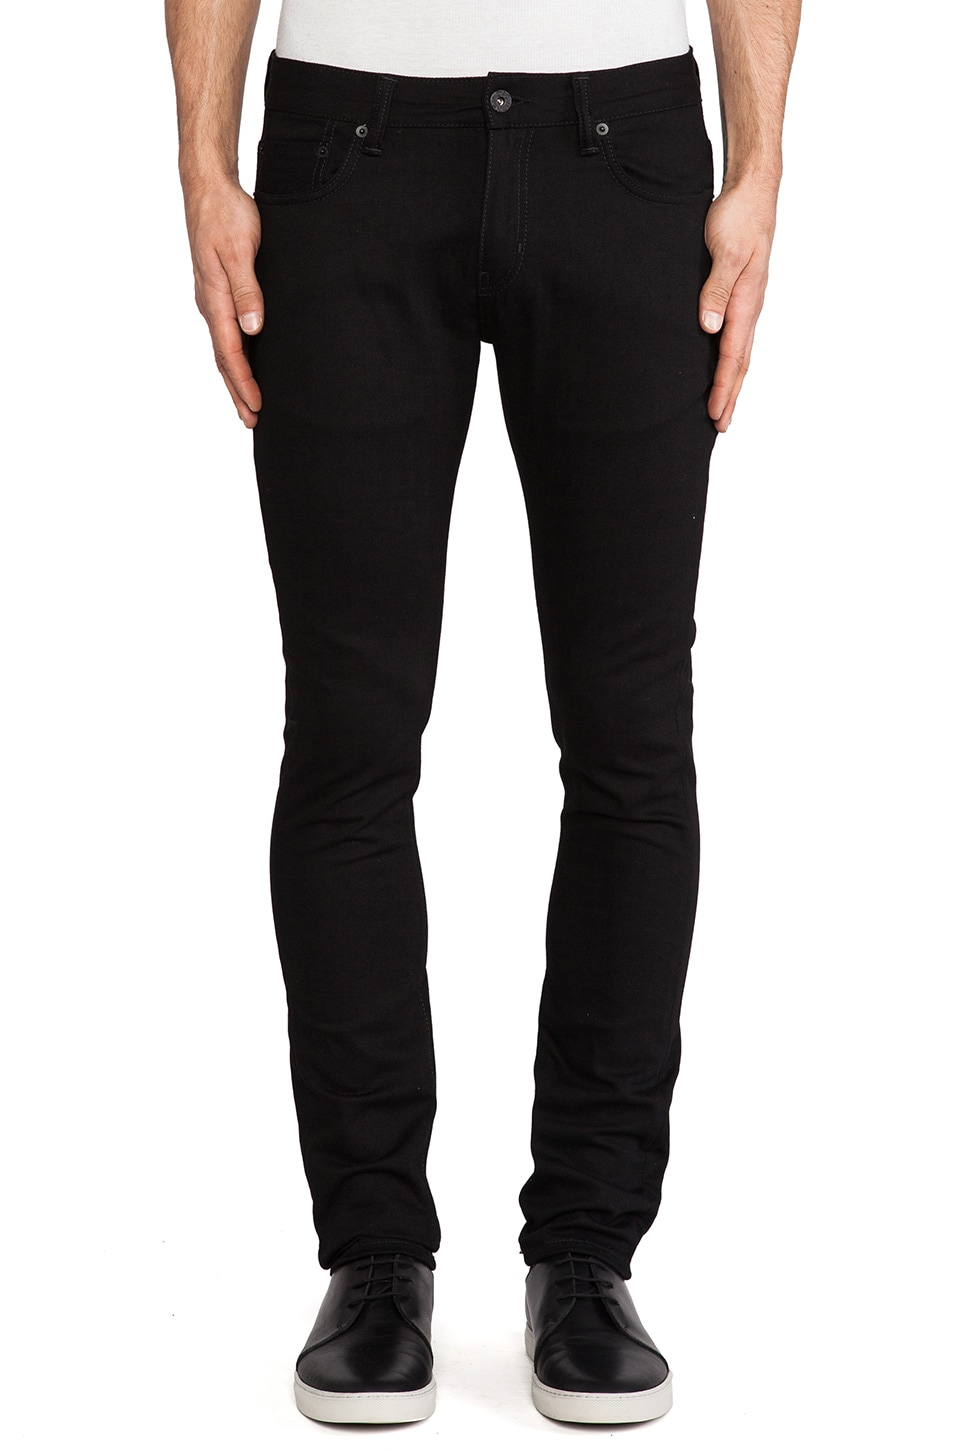 Natural Selection Denim Skinny in Black